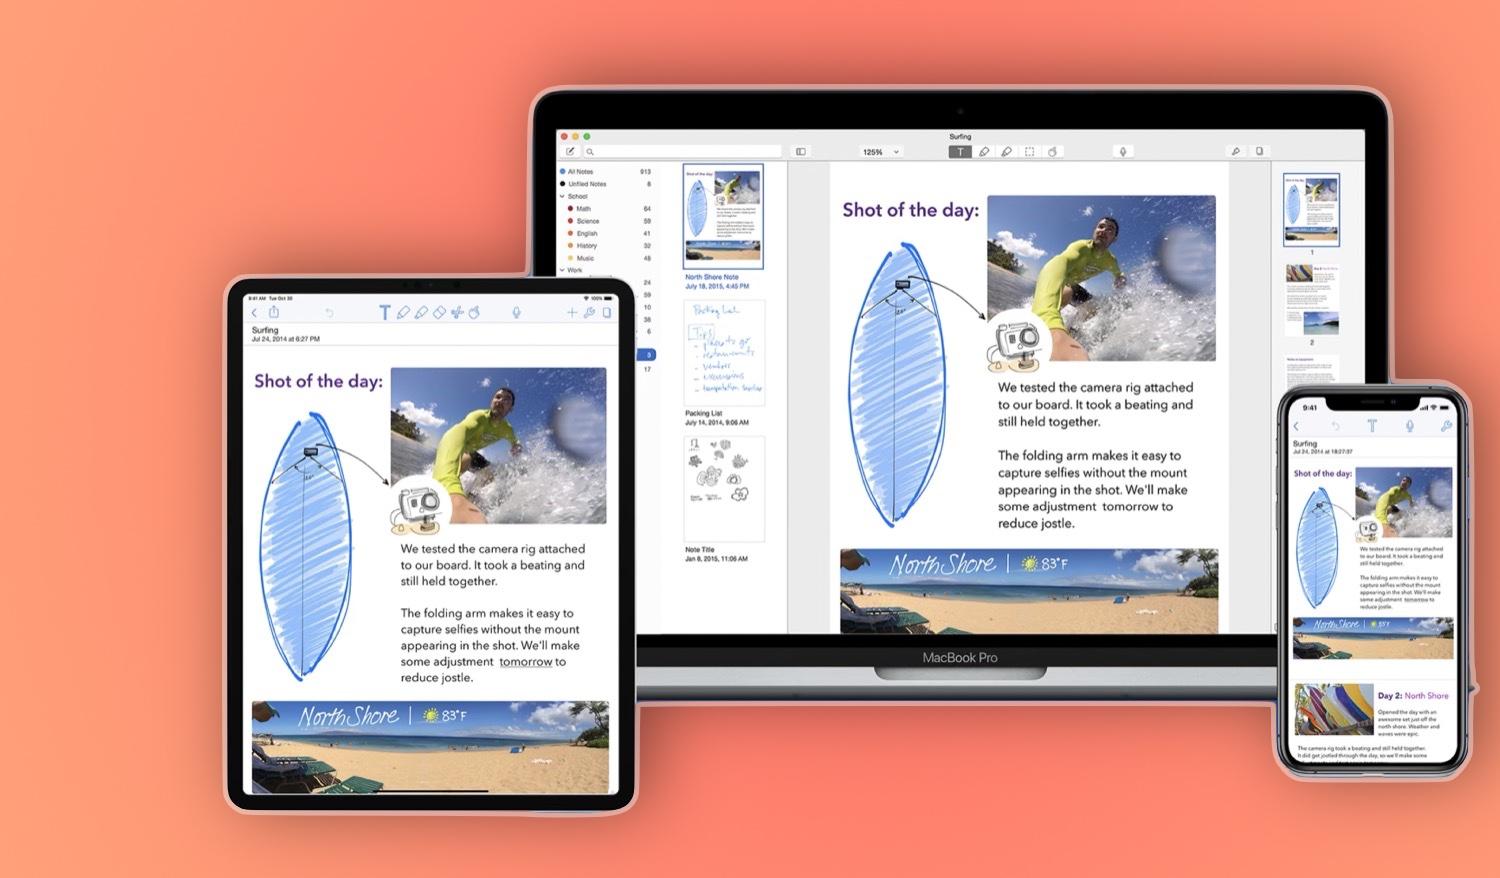 A promotional image showing the note-taking app Notability on the iPhone, iPad and Mac